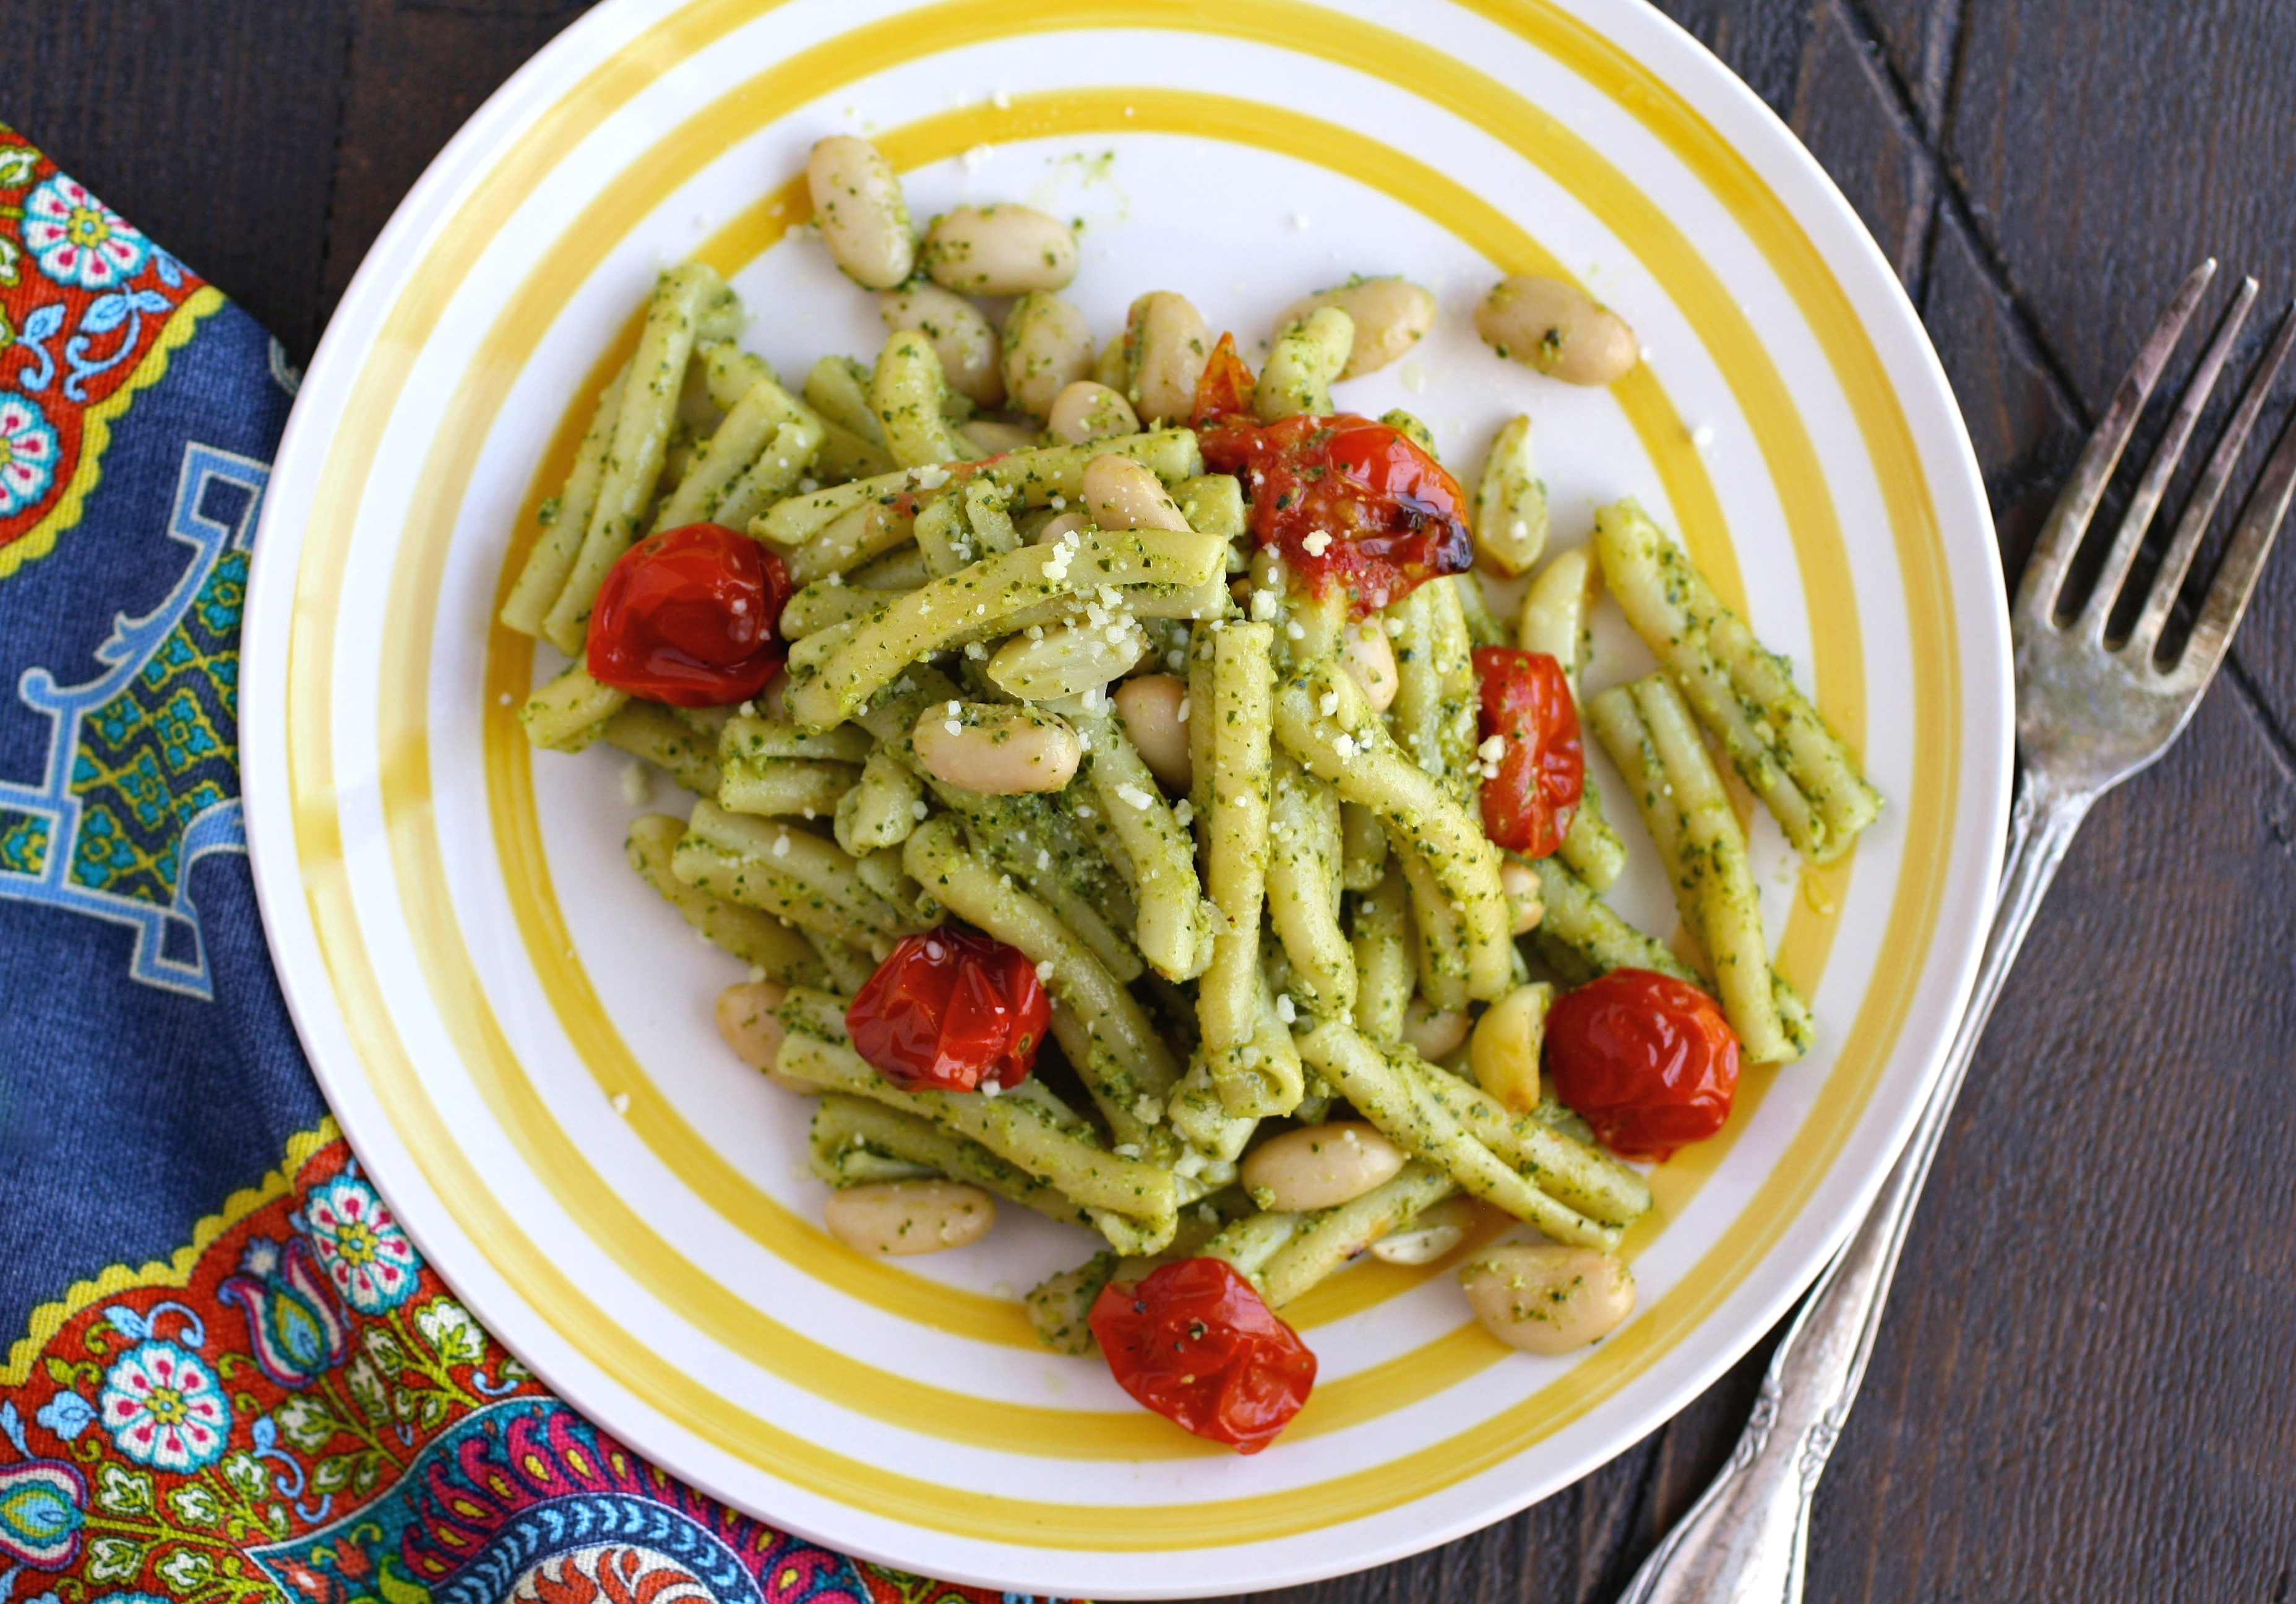 dig in to Kale Pesto Pasta with Roasted Tomatoes and White Beans for a flavorful meal!